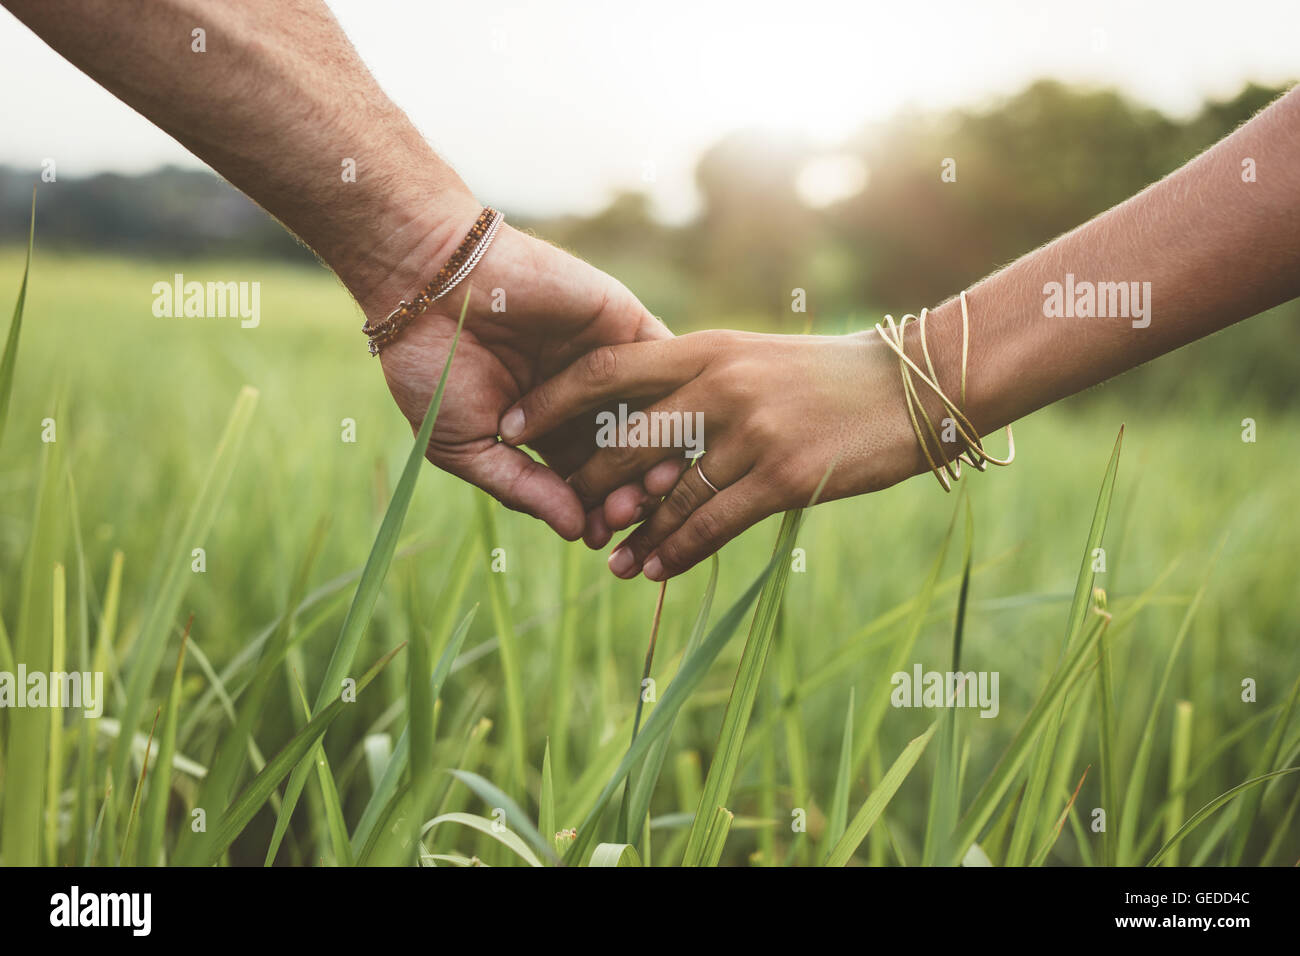 Shot of romantic couple holding hands in a field. Close up shot of man and woman with hand in hand walking through - Stock Image